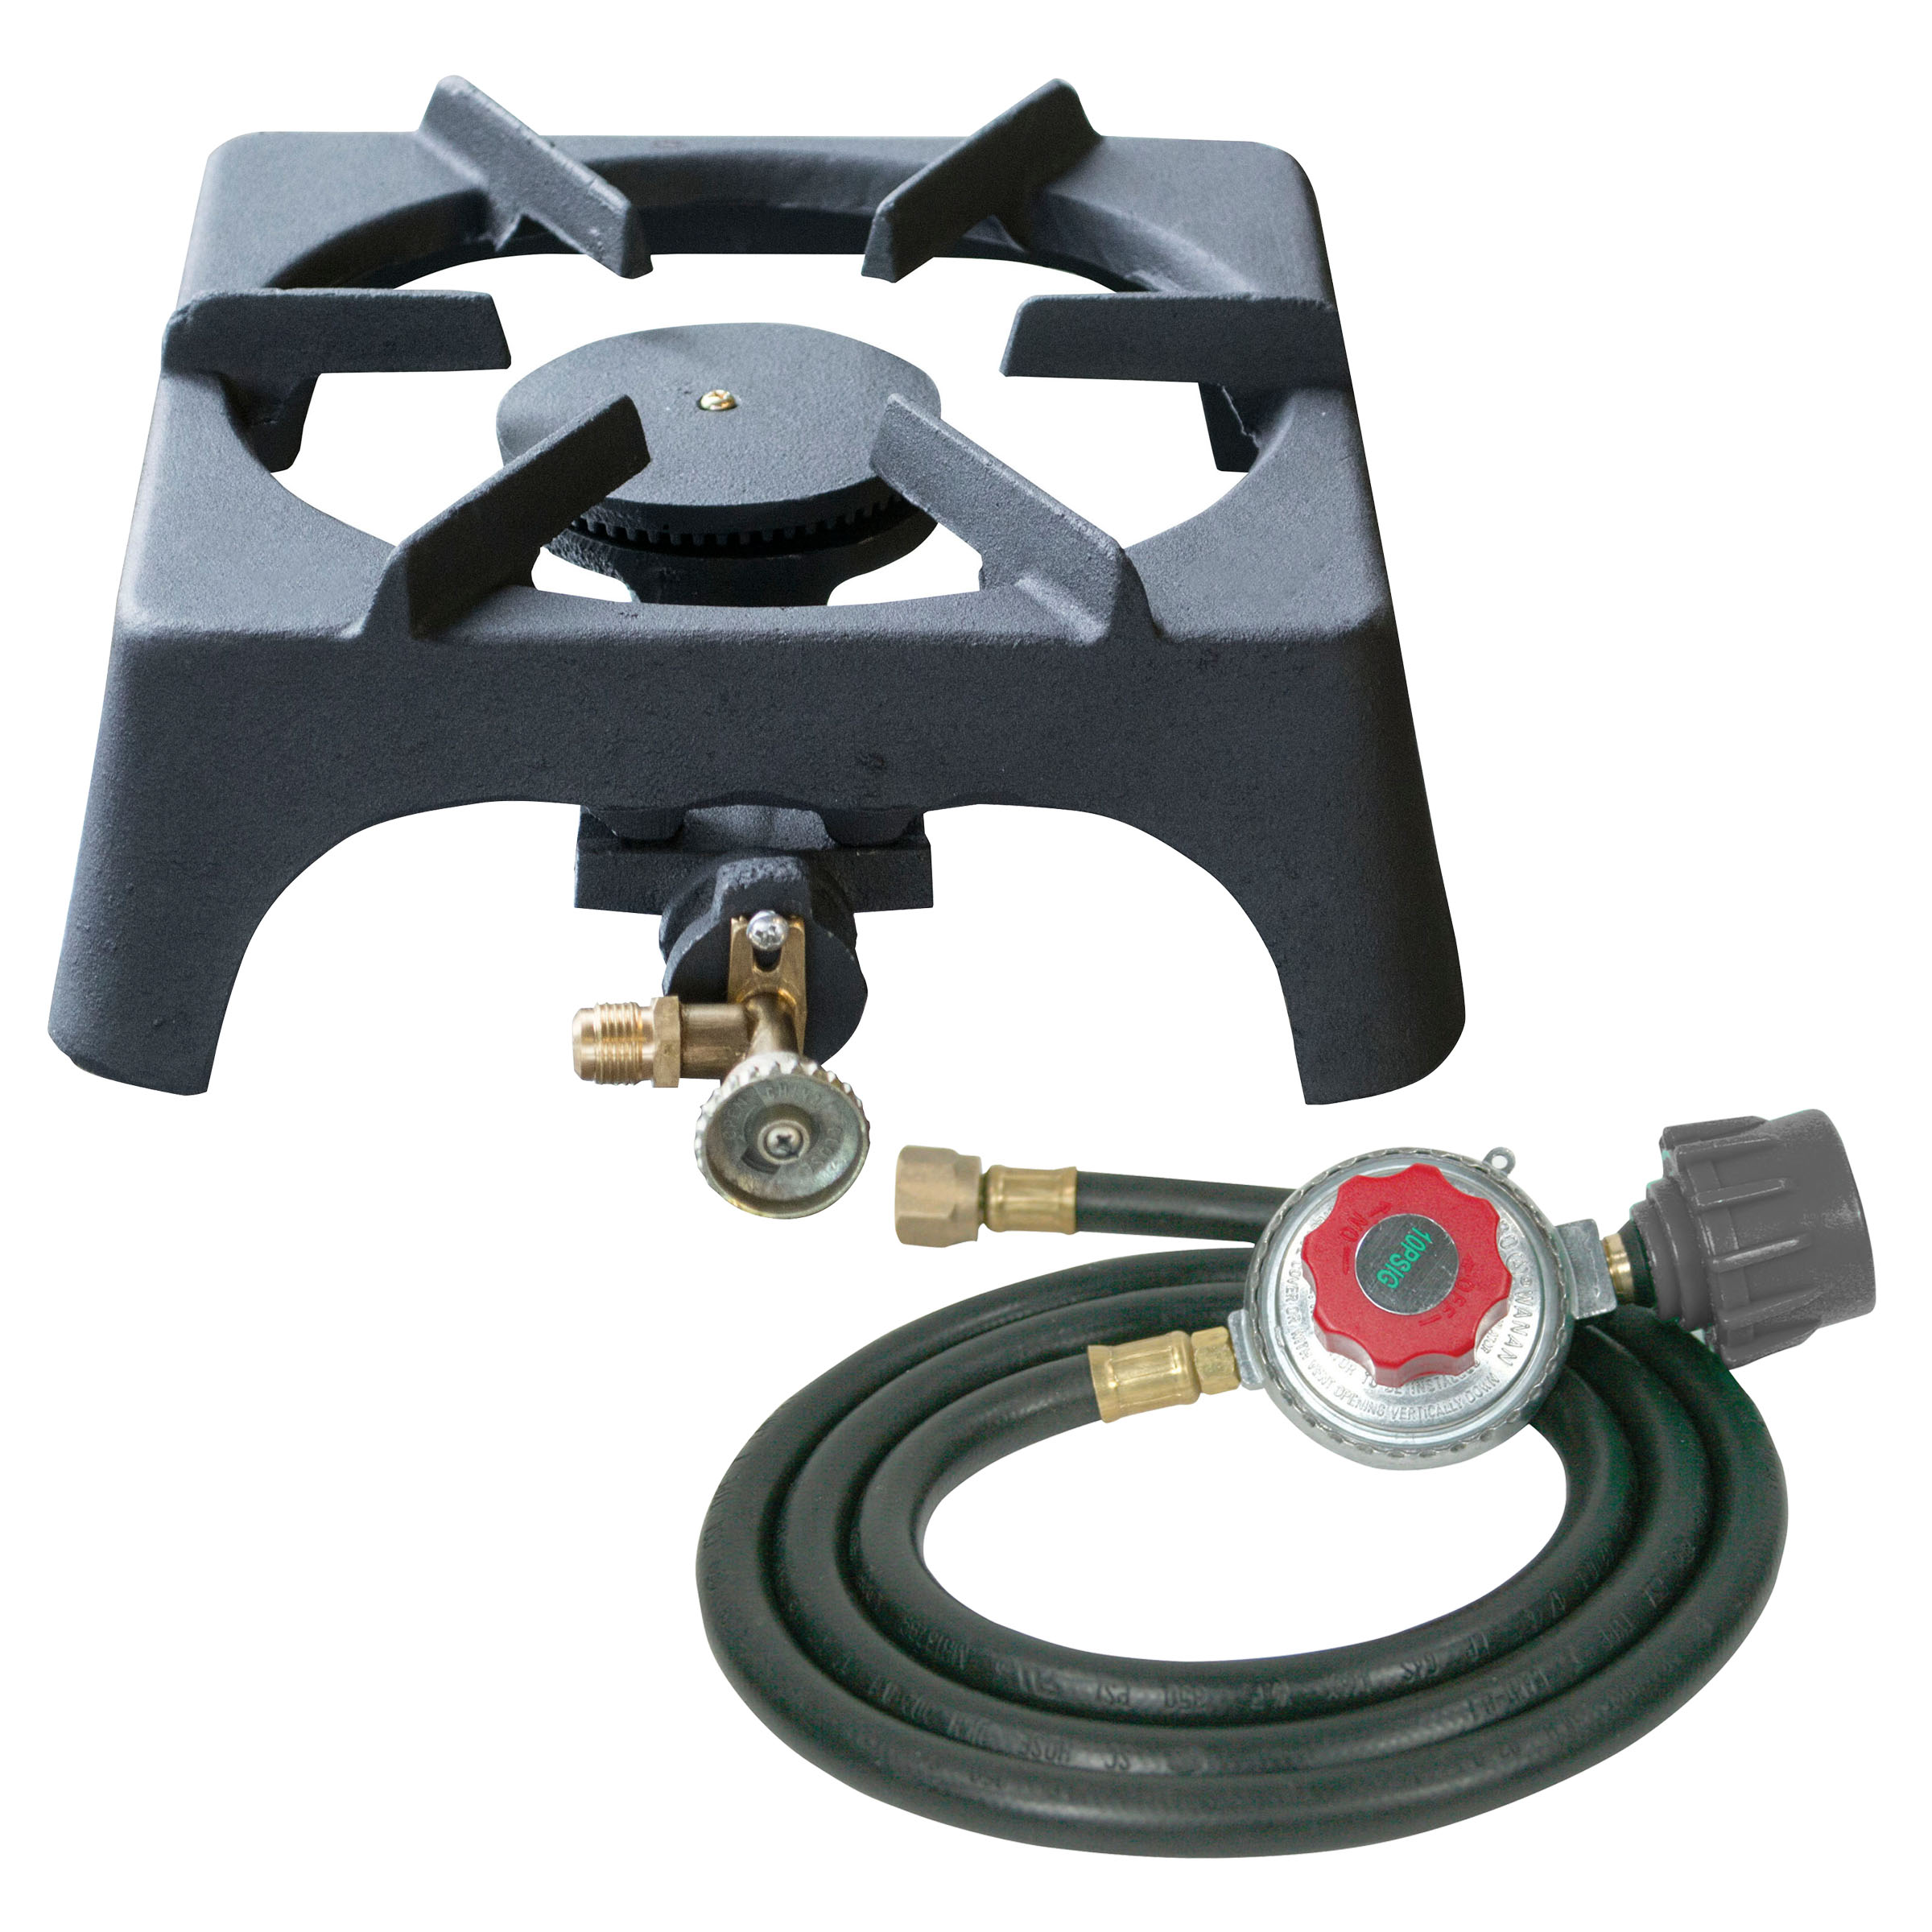 Sportsman Series Single Burner Cast Iron Stove with Regulator Hose